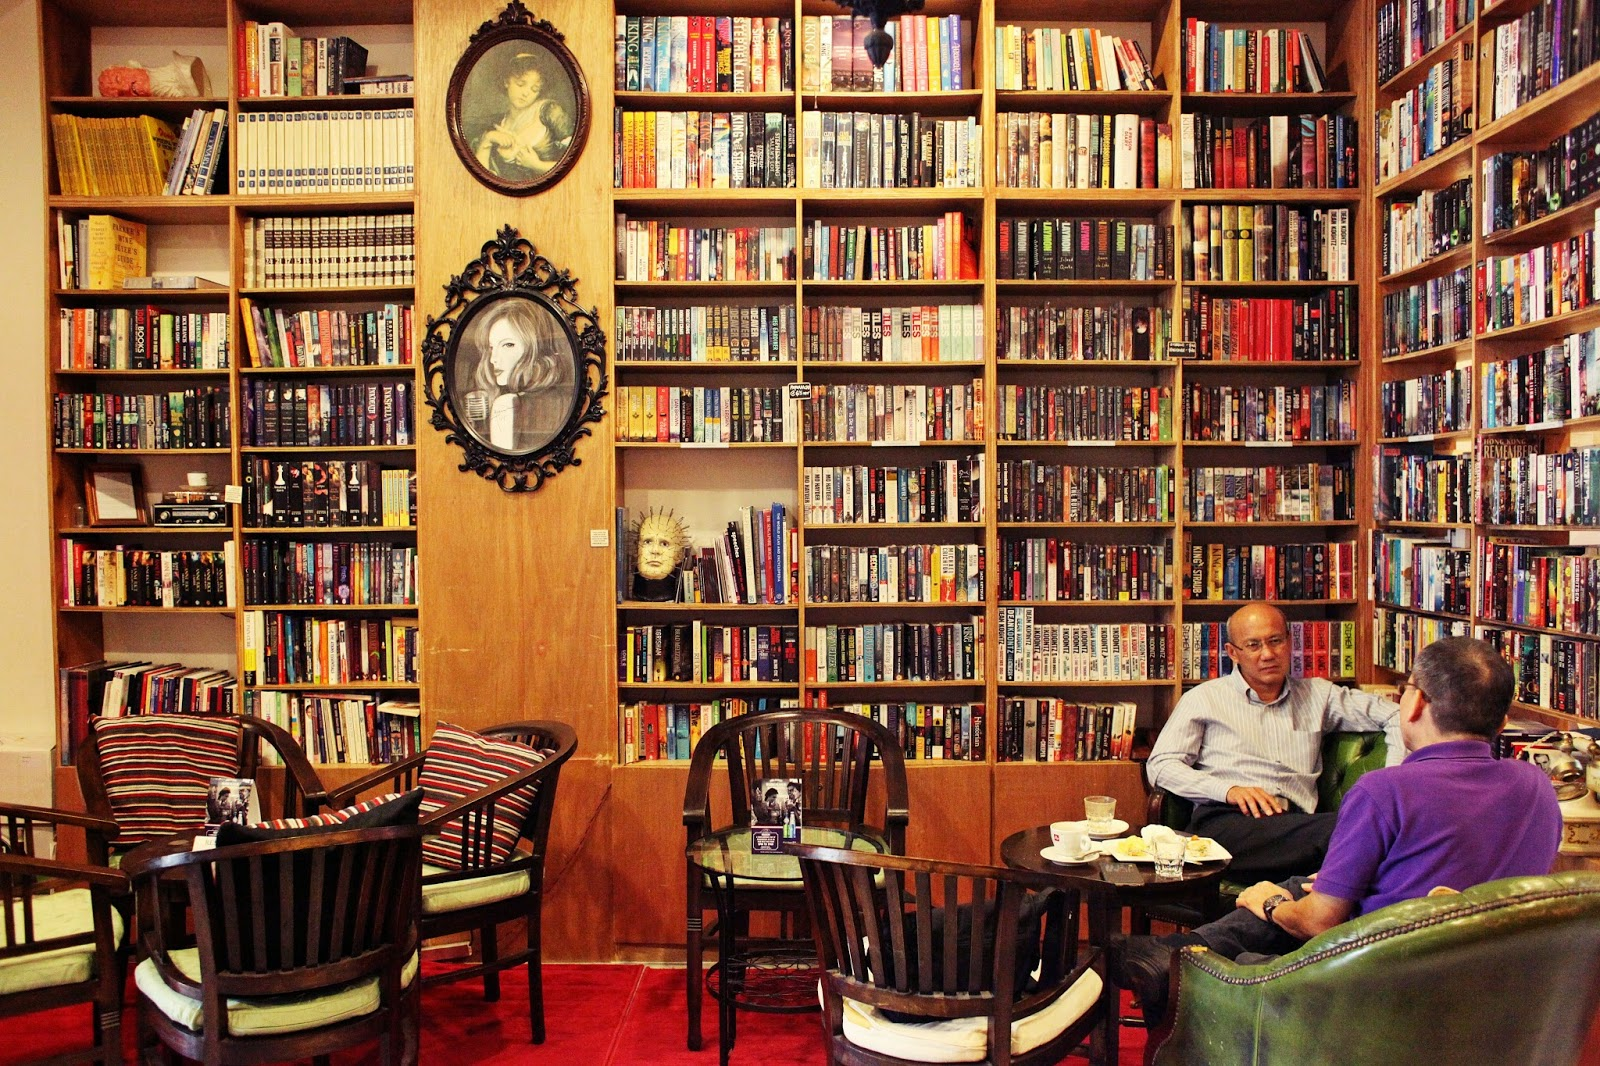 The Reading Room, late night chill